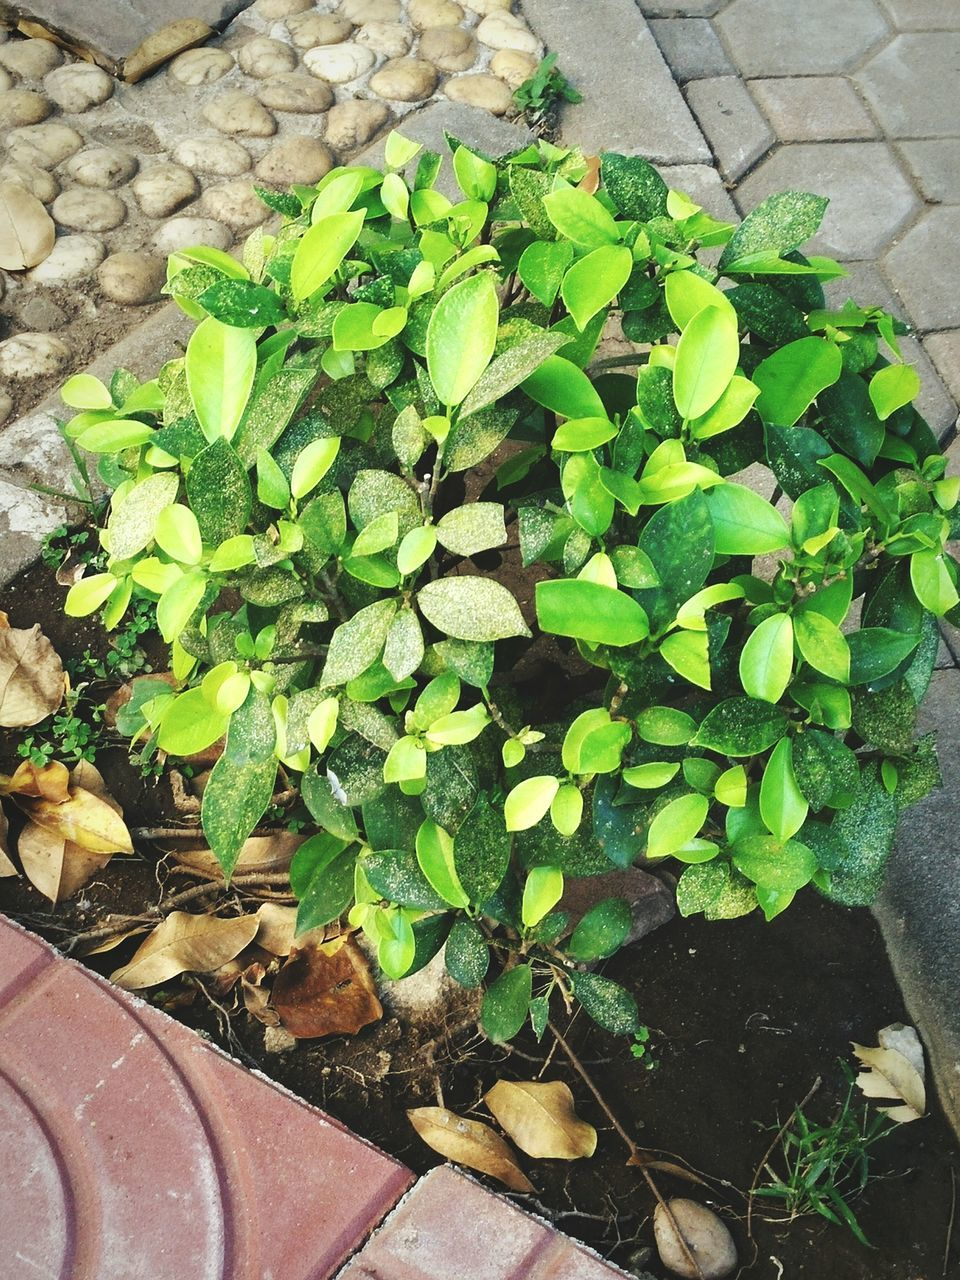 plant, leaf, growth, high angle view, green color, potted plant, nature, day, outdoors, no people, close-up, fragility, freshness